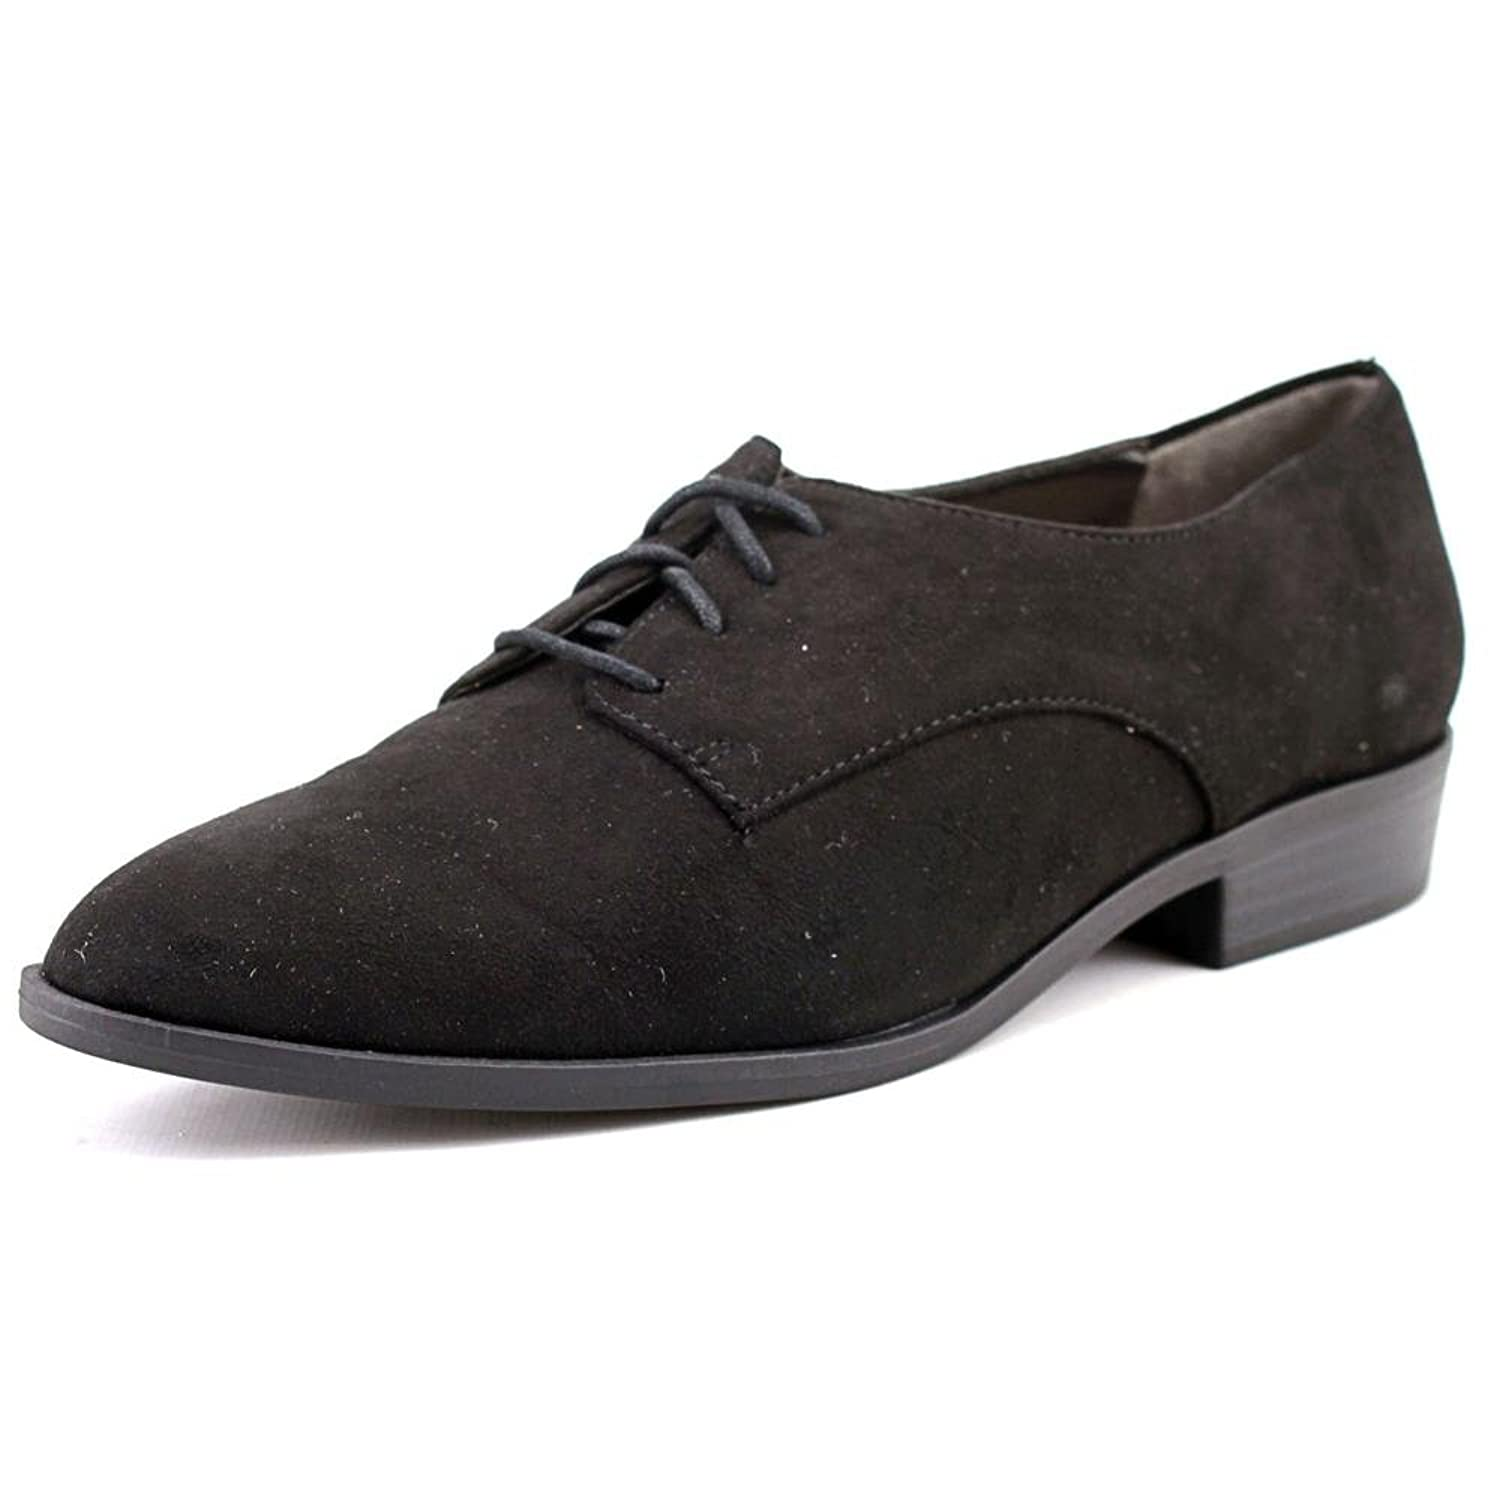 Bar III Women's Gelsey Lace Up Oxford Flats US